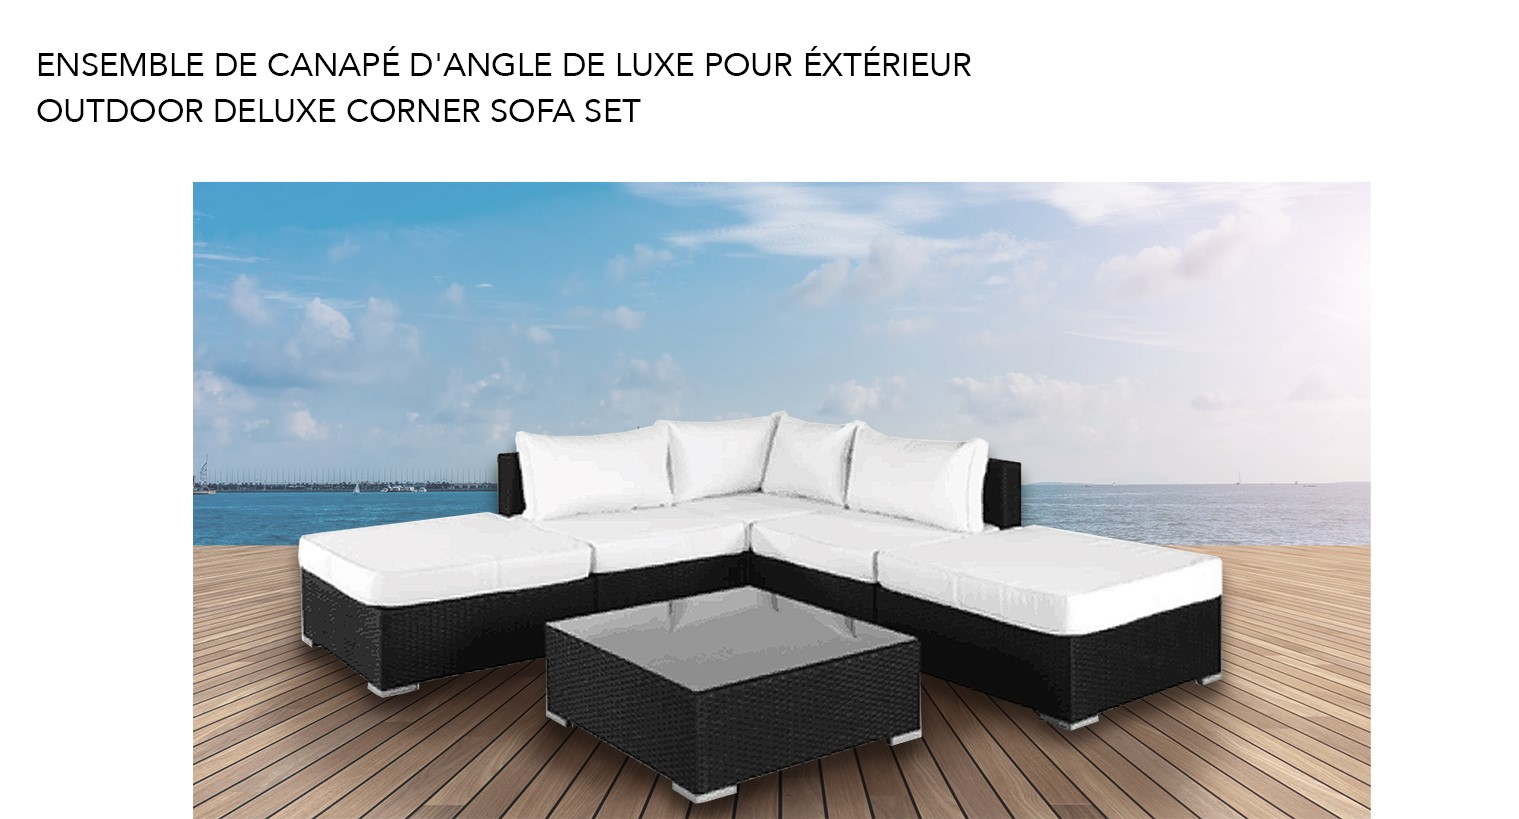 ... Outdoor Furniture   Mobilier De Jardin; /. Showing 27 Products. DELUXE  SOFA SET W/OTTOMAN BRN